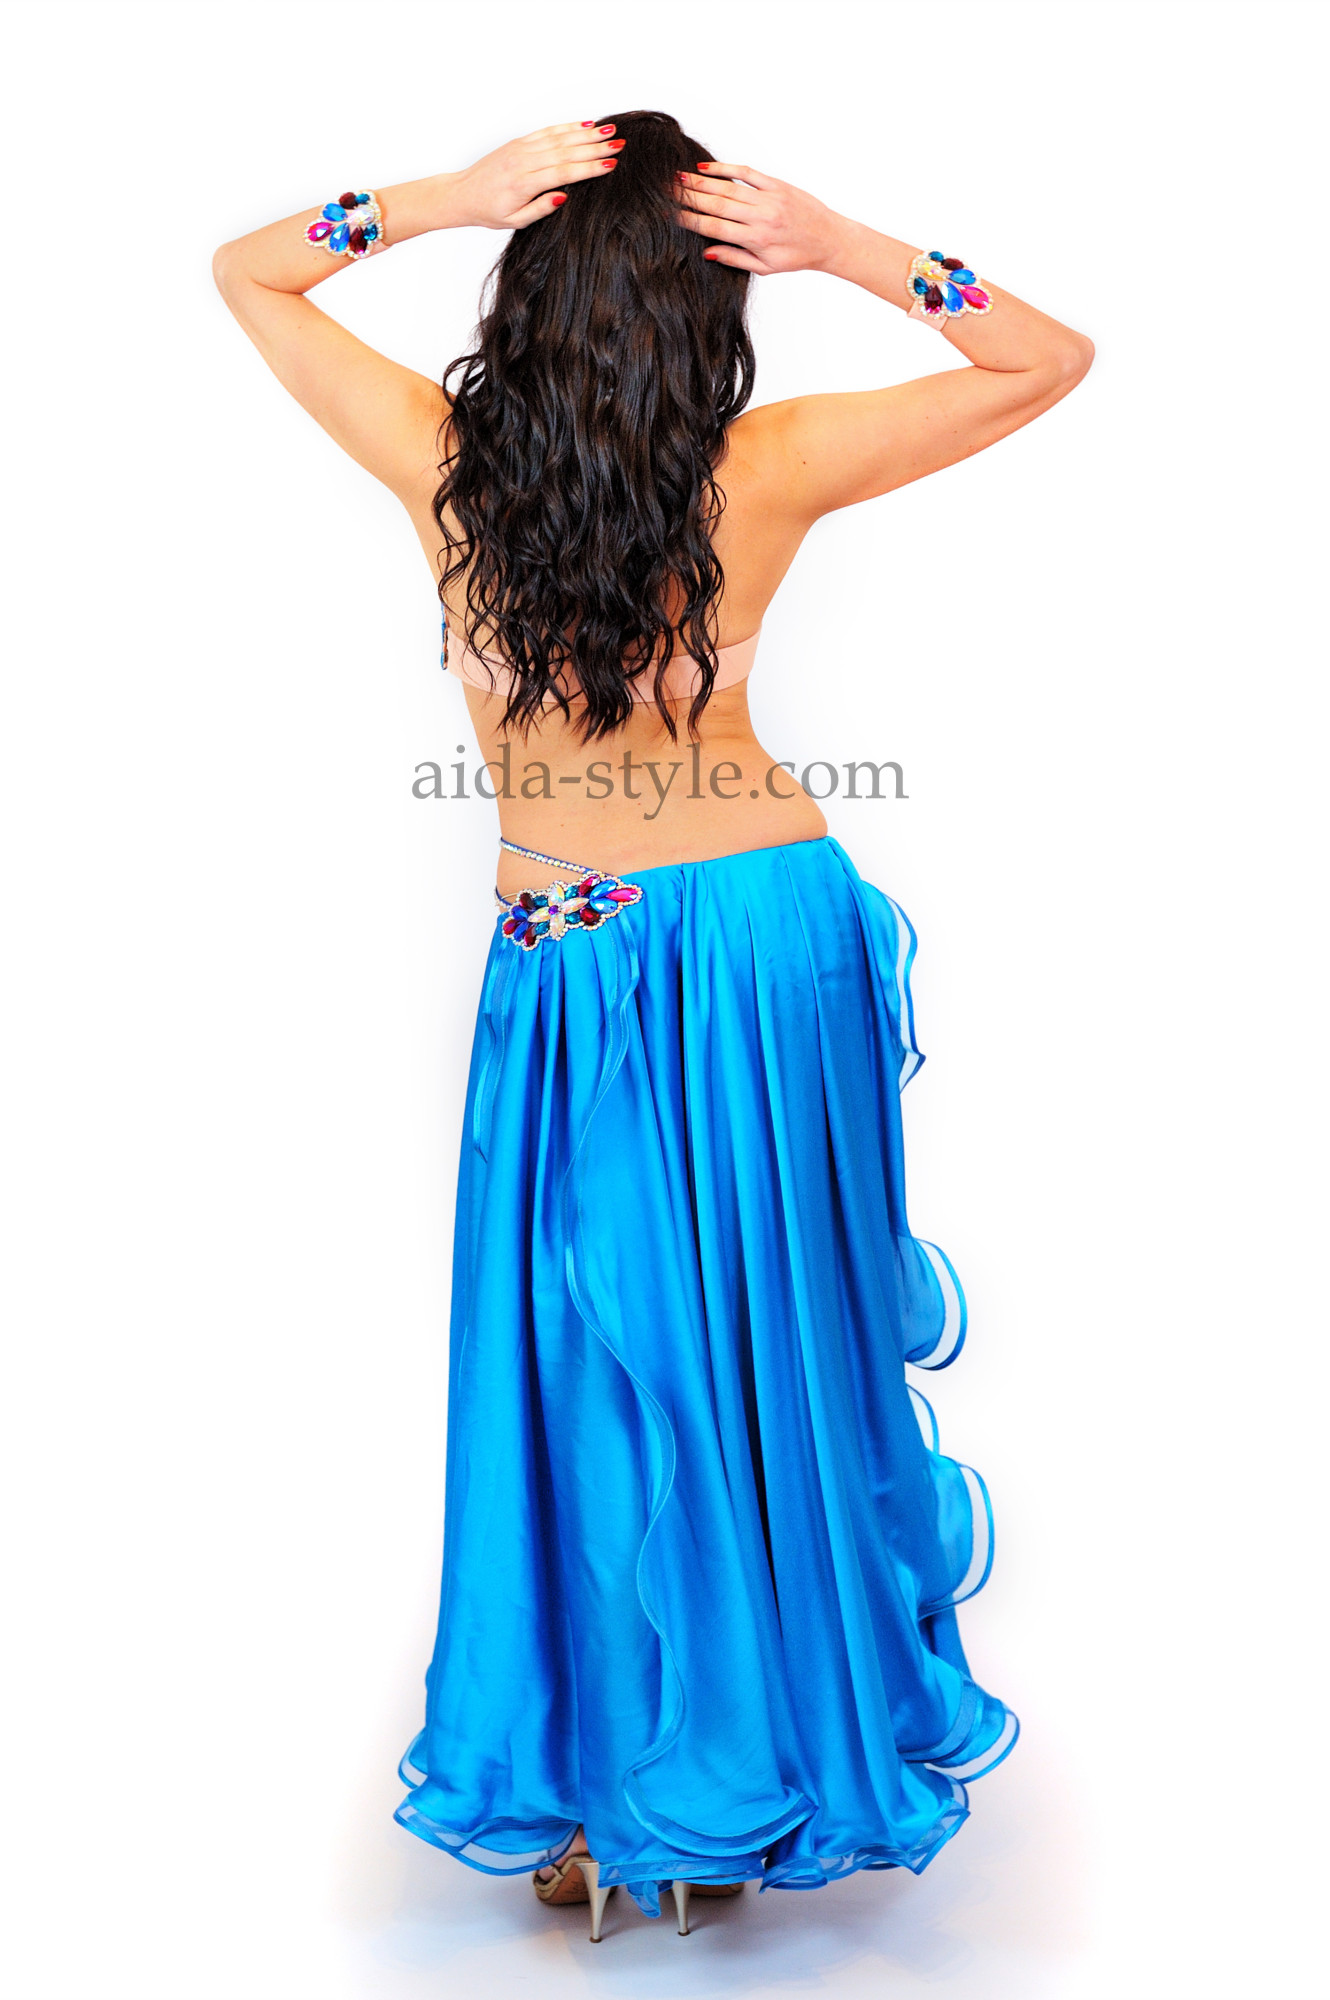 Bright blue professional belly dance costume with flowers from stones on the right hip and on the bra